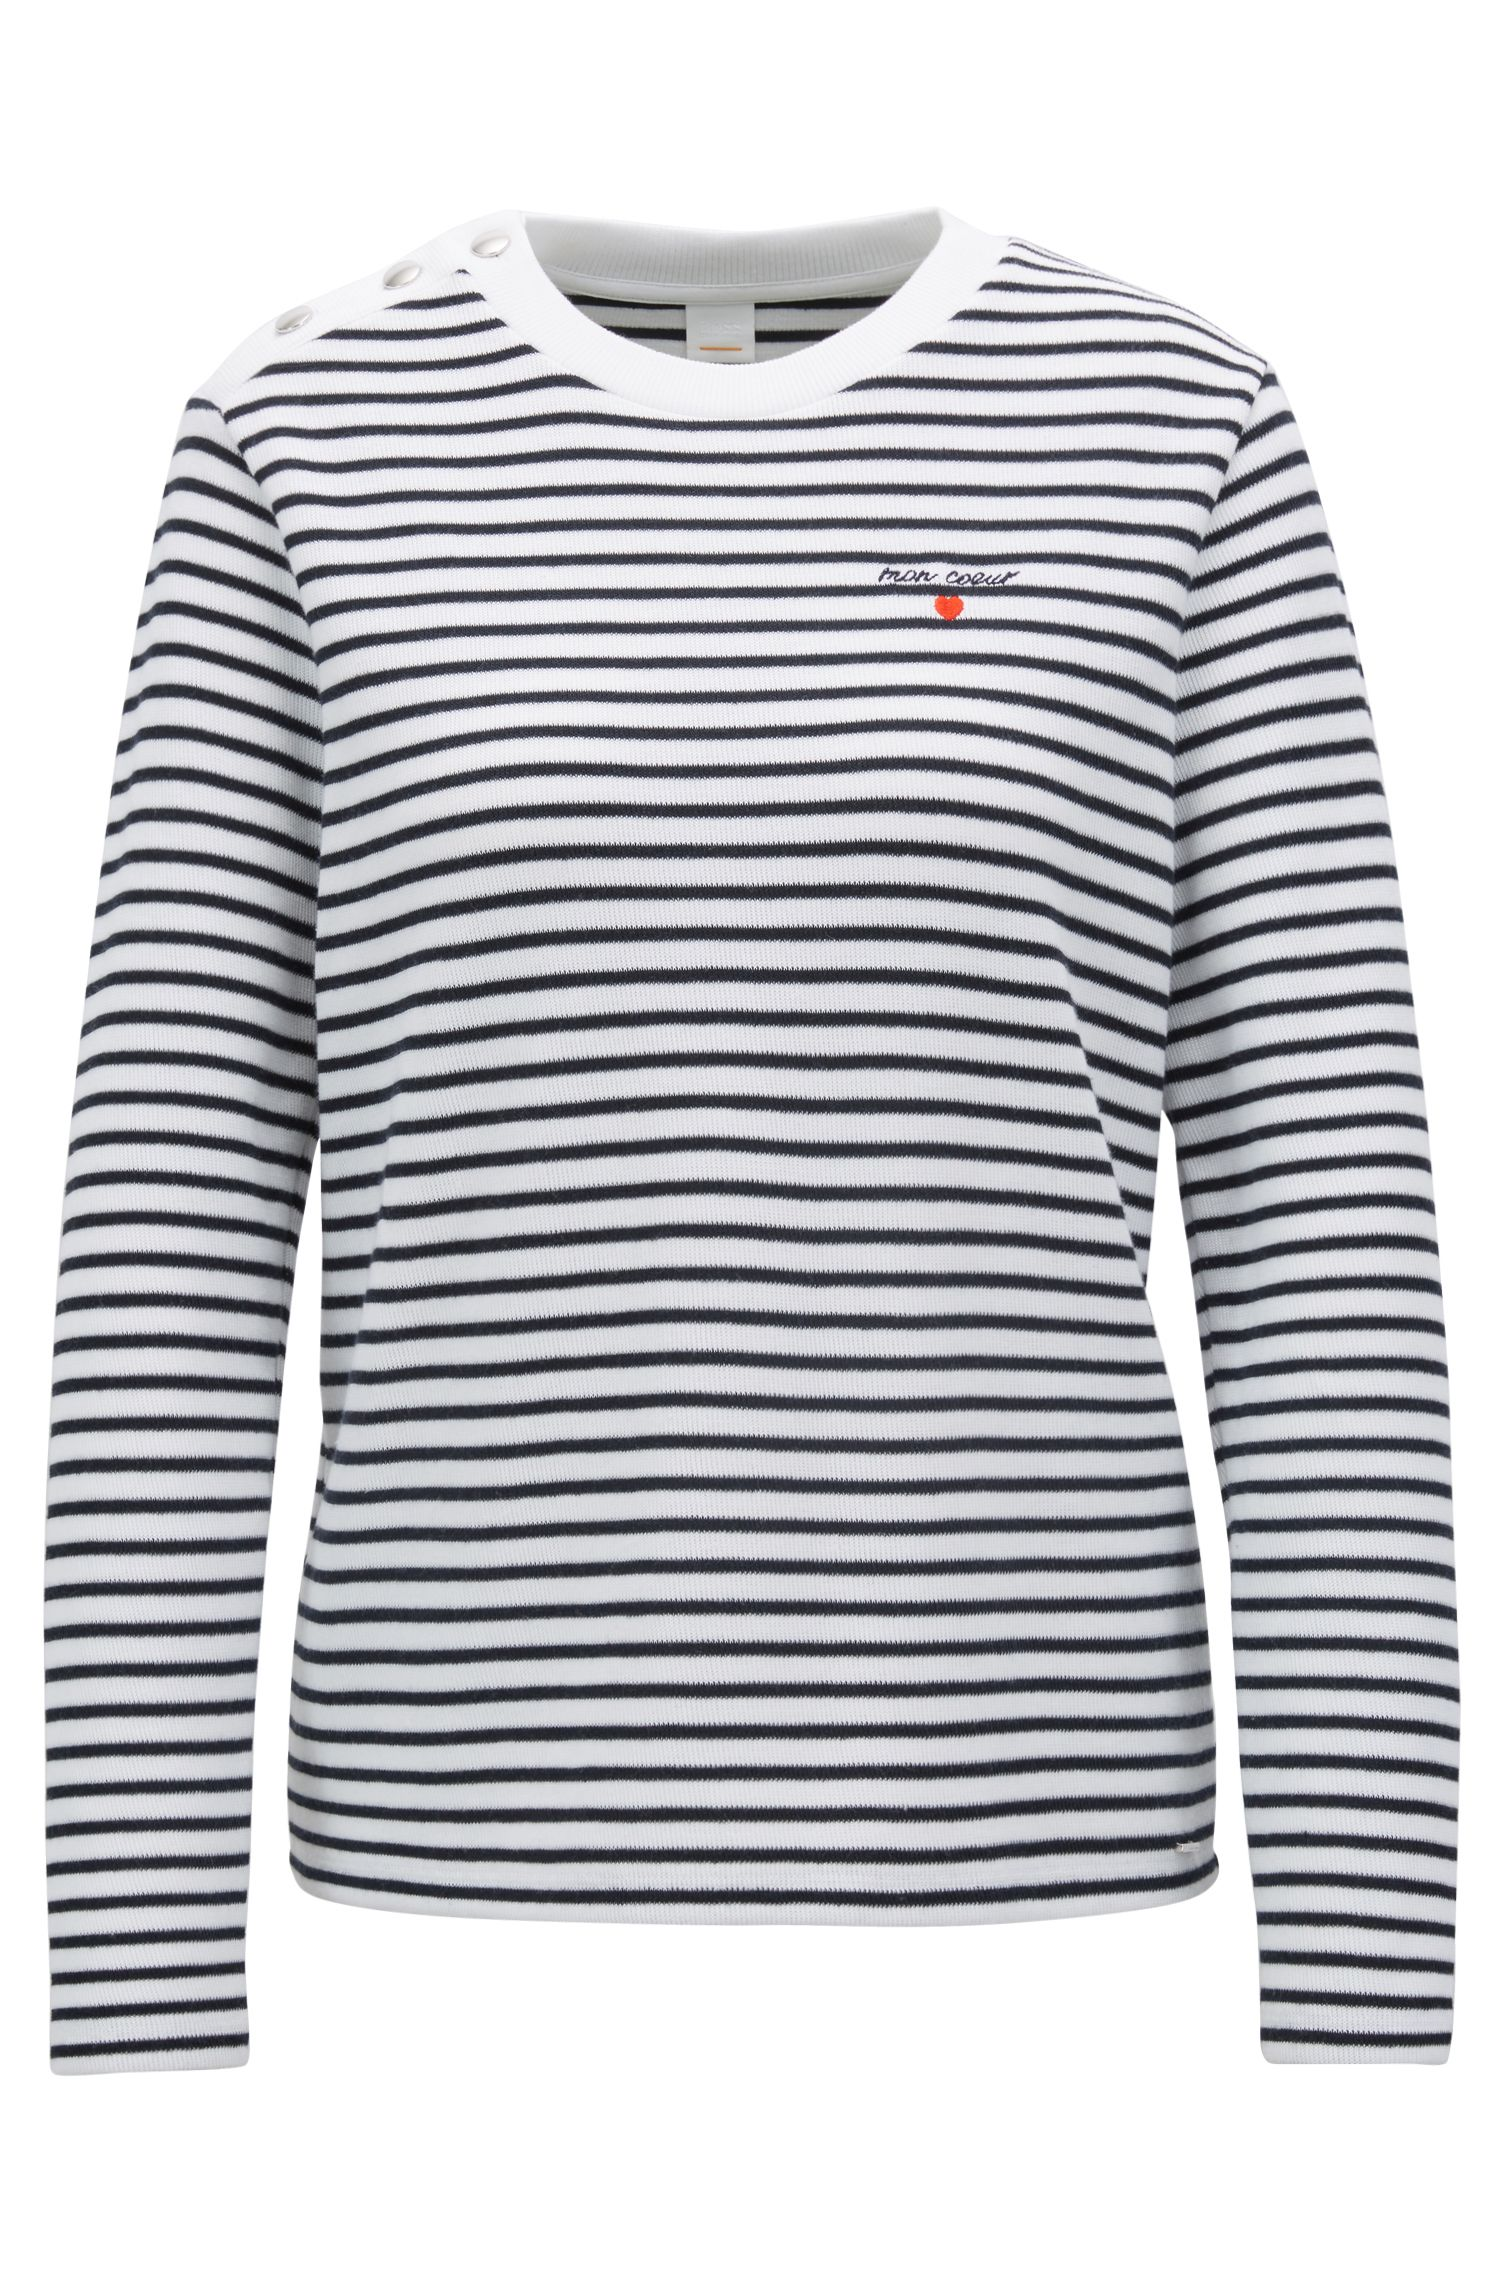 Long-sleeved striped T-shirt with slogan embroidery